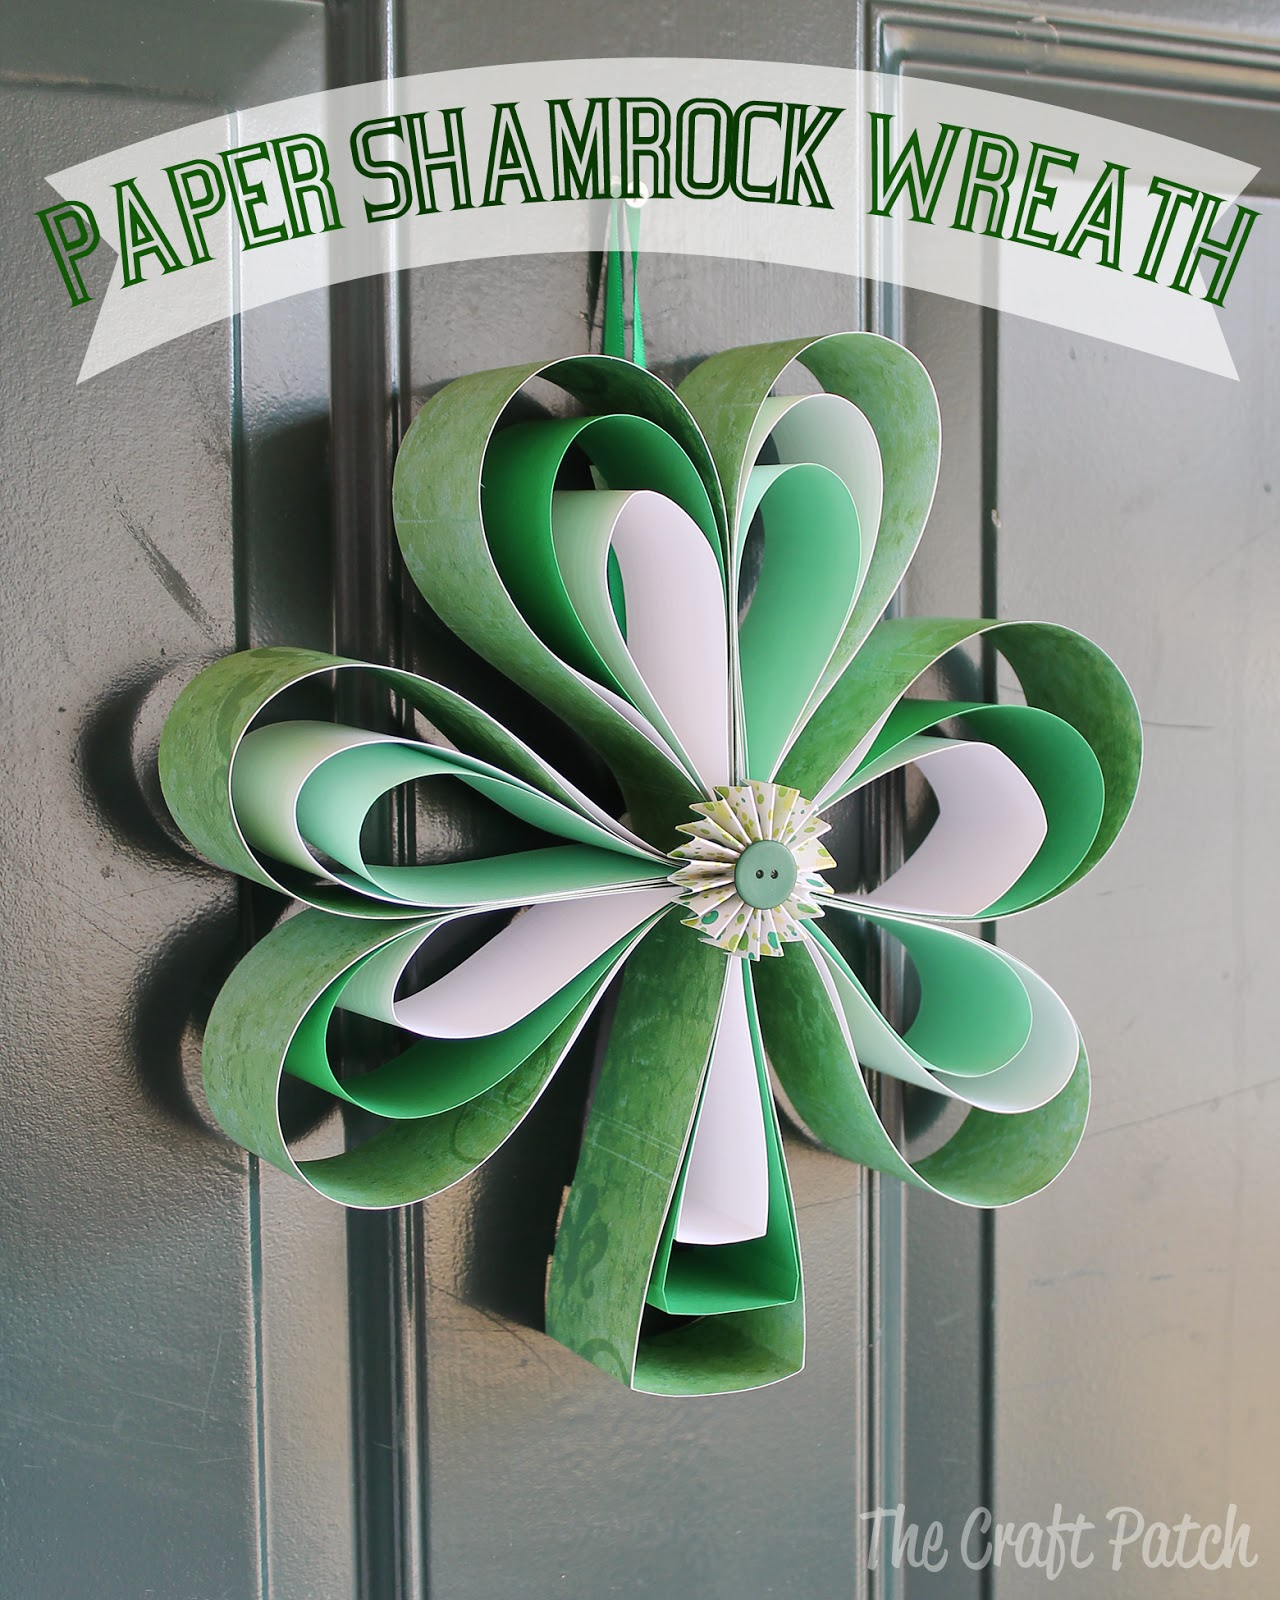 How to scrapbook at home - How To Make Scrapbook Paper At Home Dress Up Your Home For St Patrick S